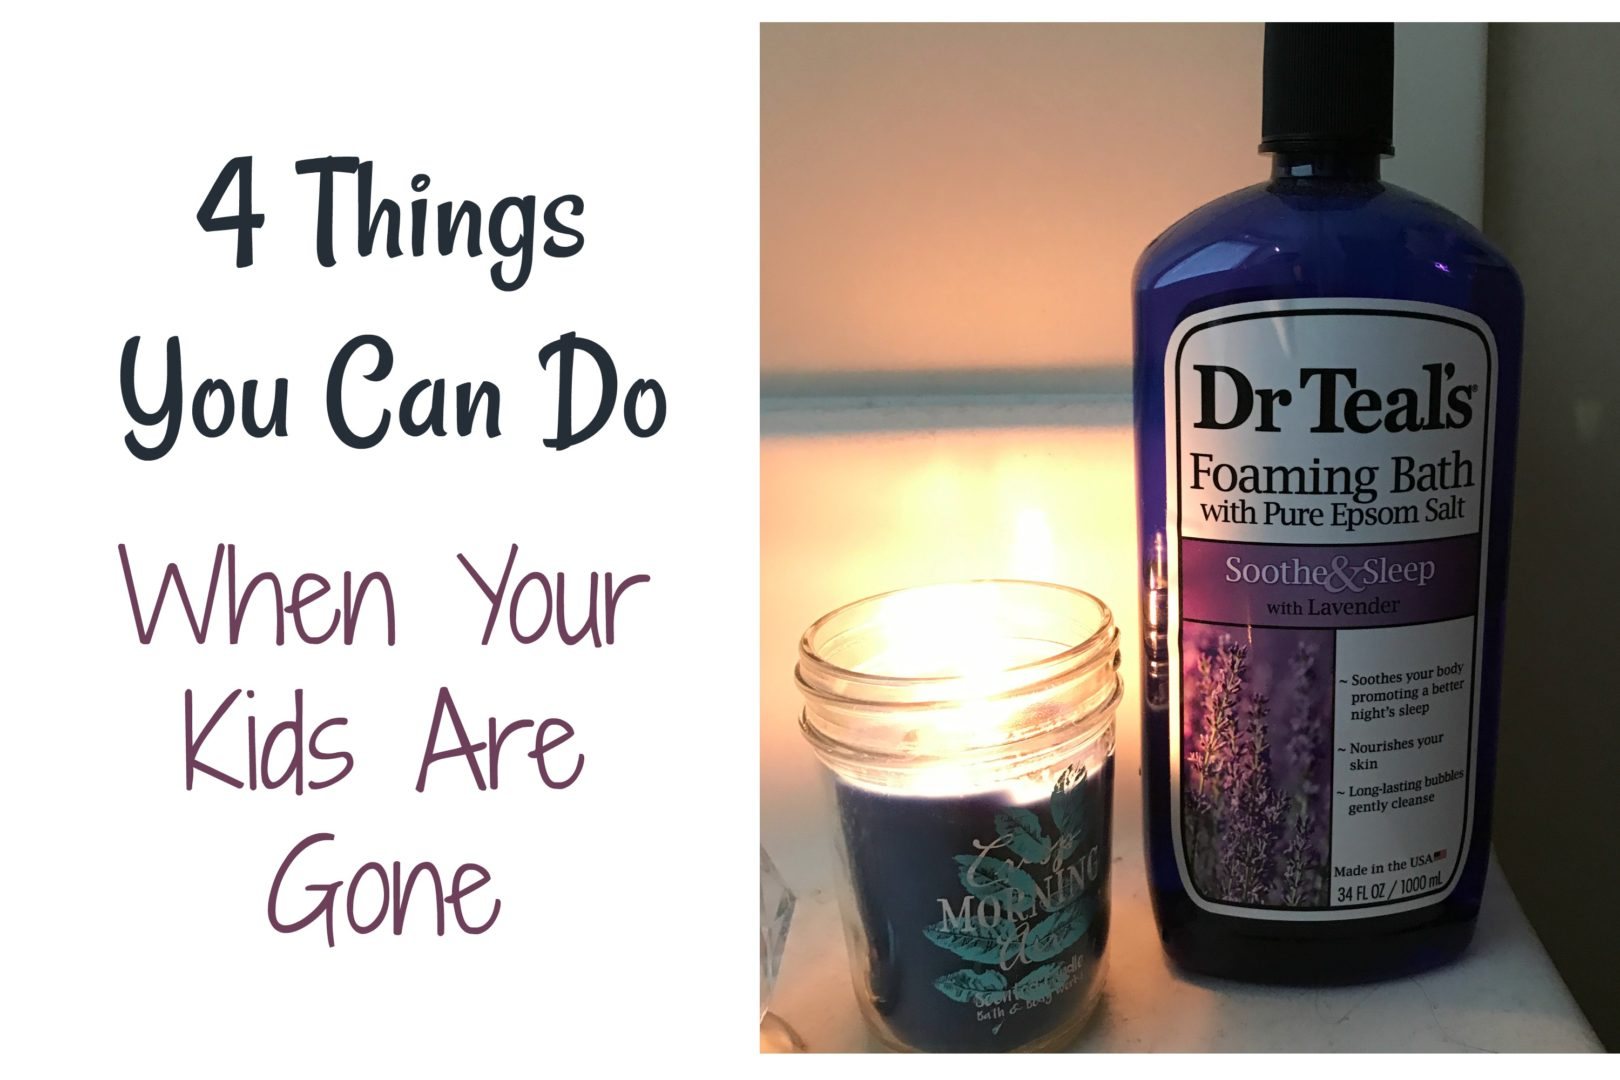 4 Things To Do When Your Kids Are Gone | Always Moving Mommy | Need ideas for what to do when your kids are gone? This list will help